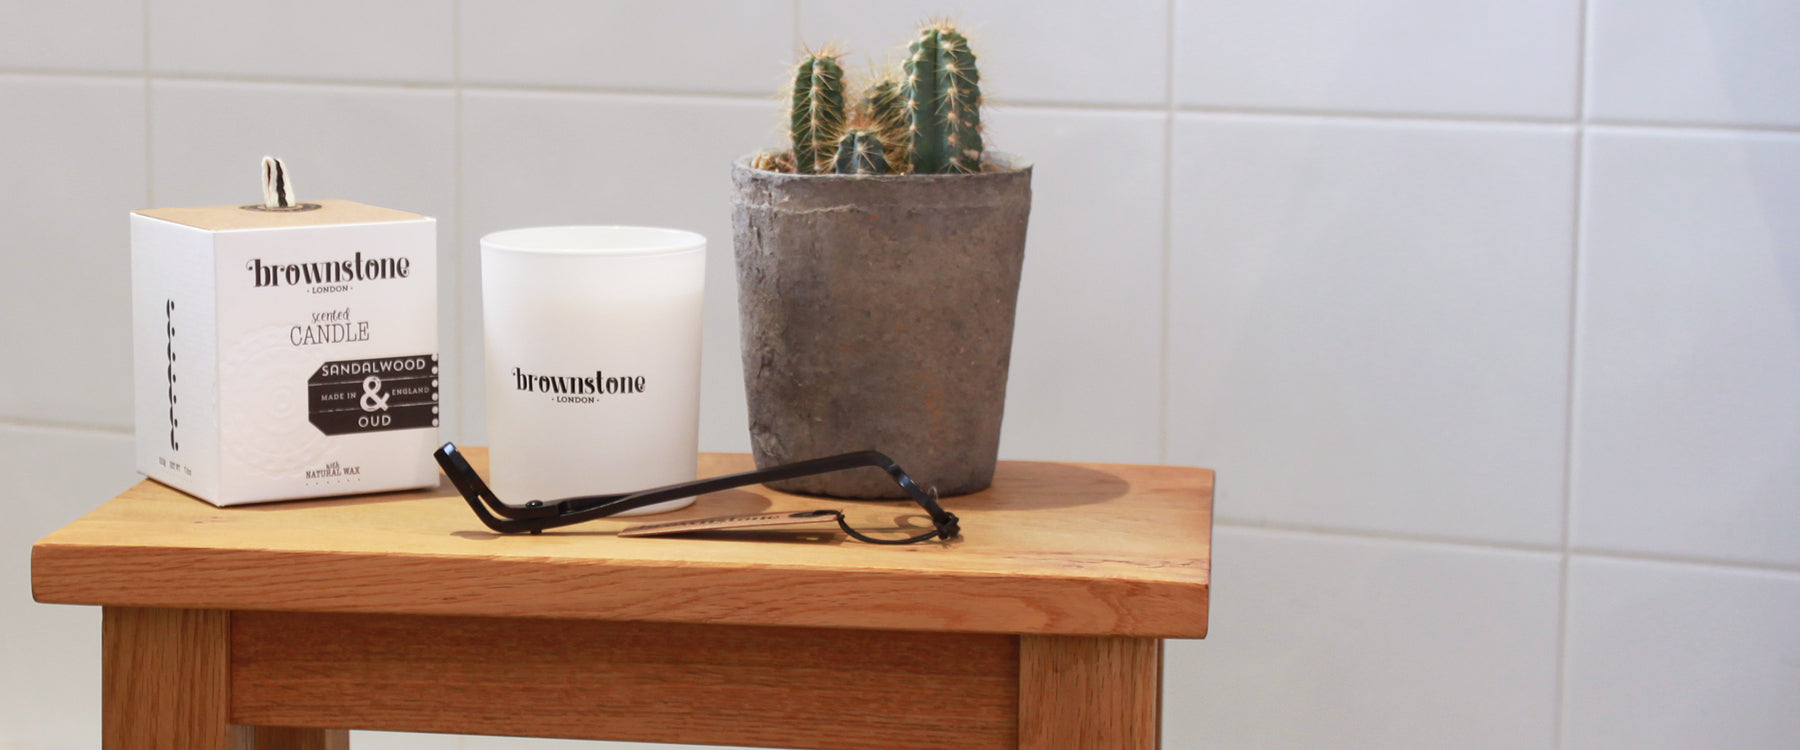 brownstone candles